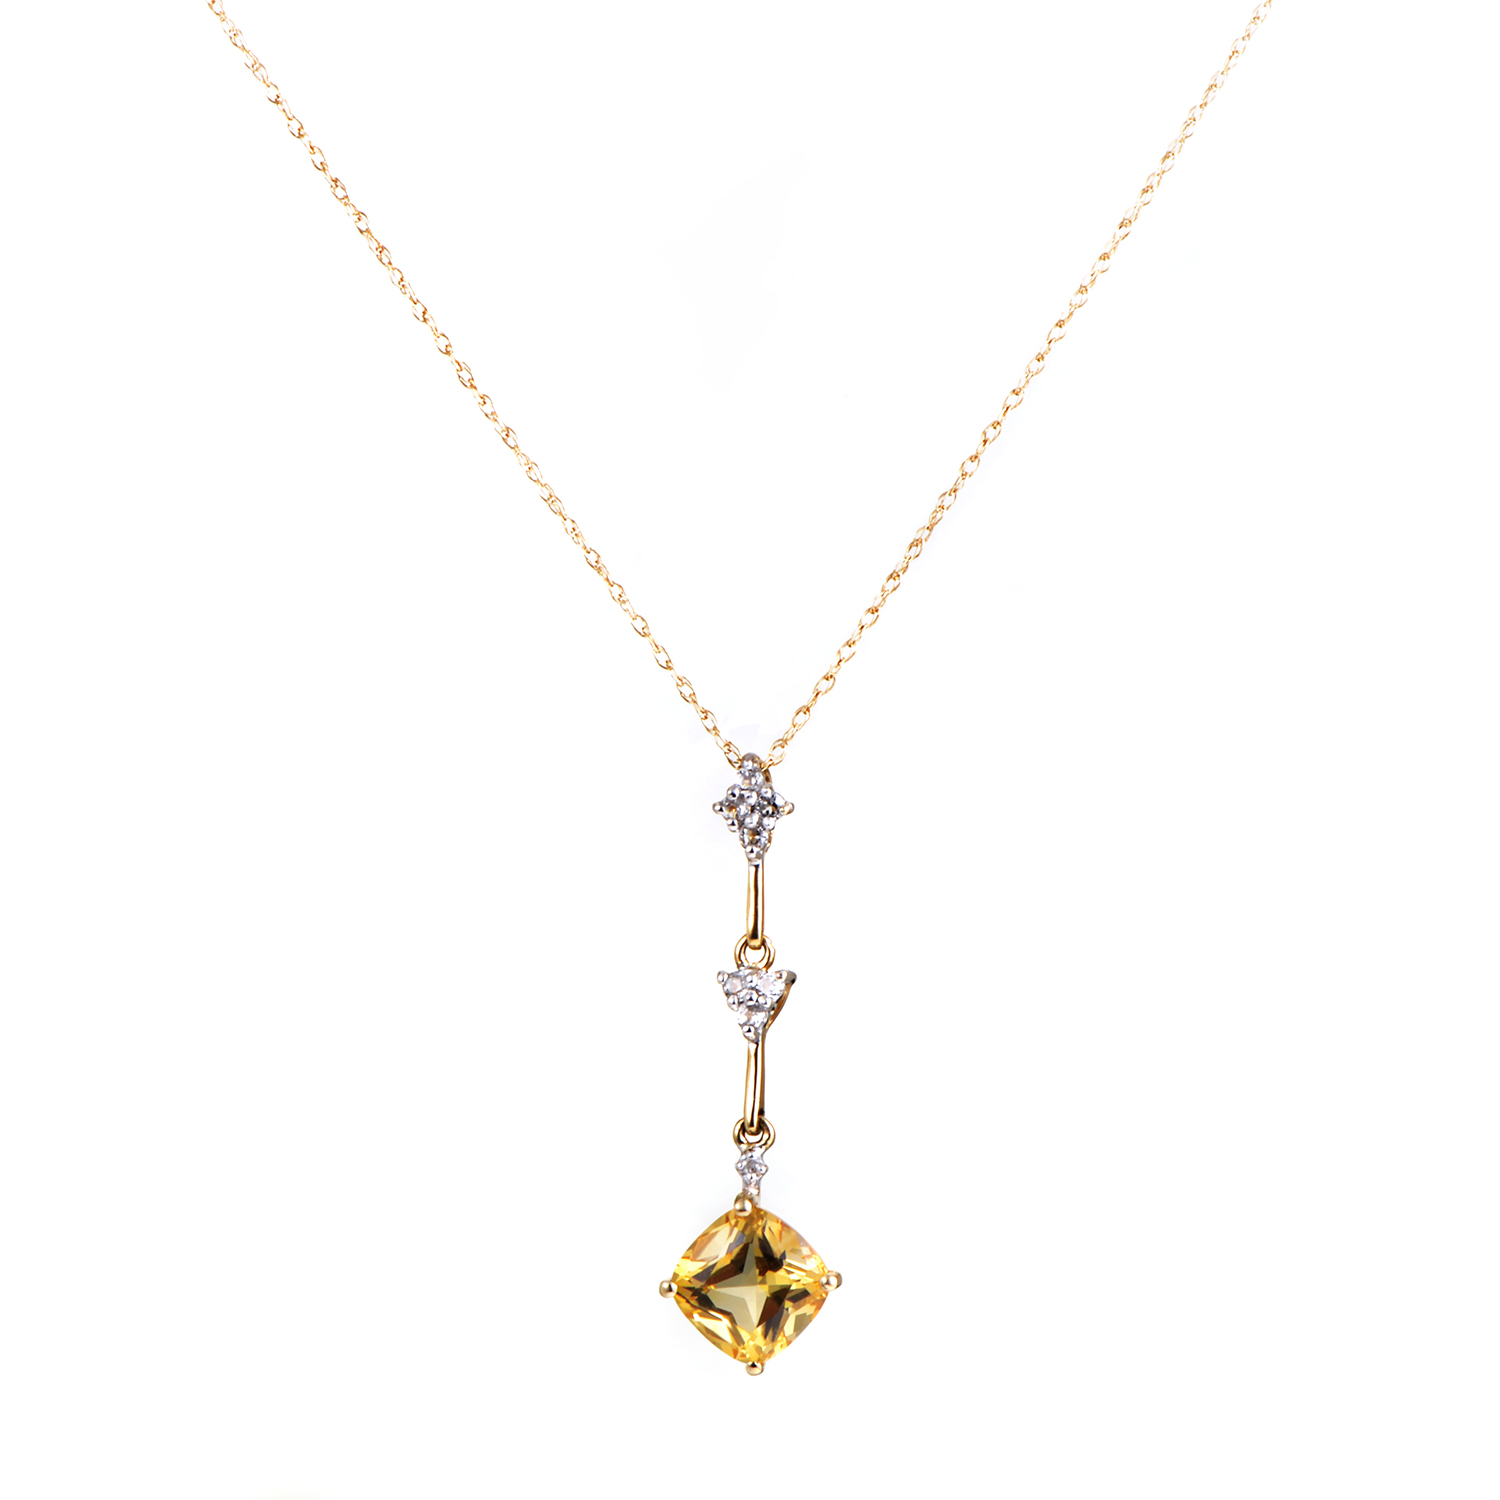 Womens 14K White and Yellow Gold Diamond and Citrine Pendant Necklace